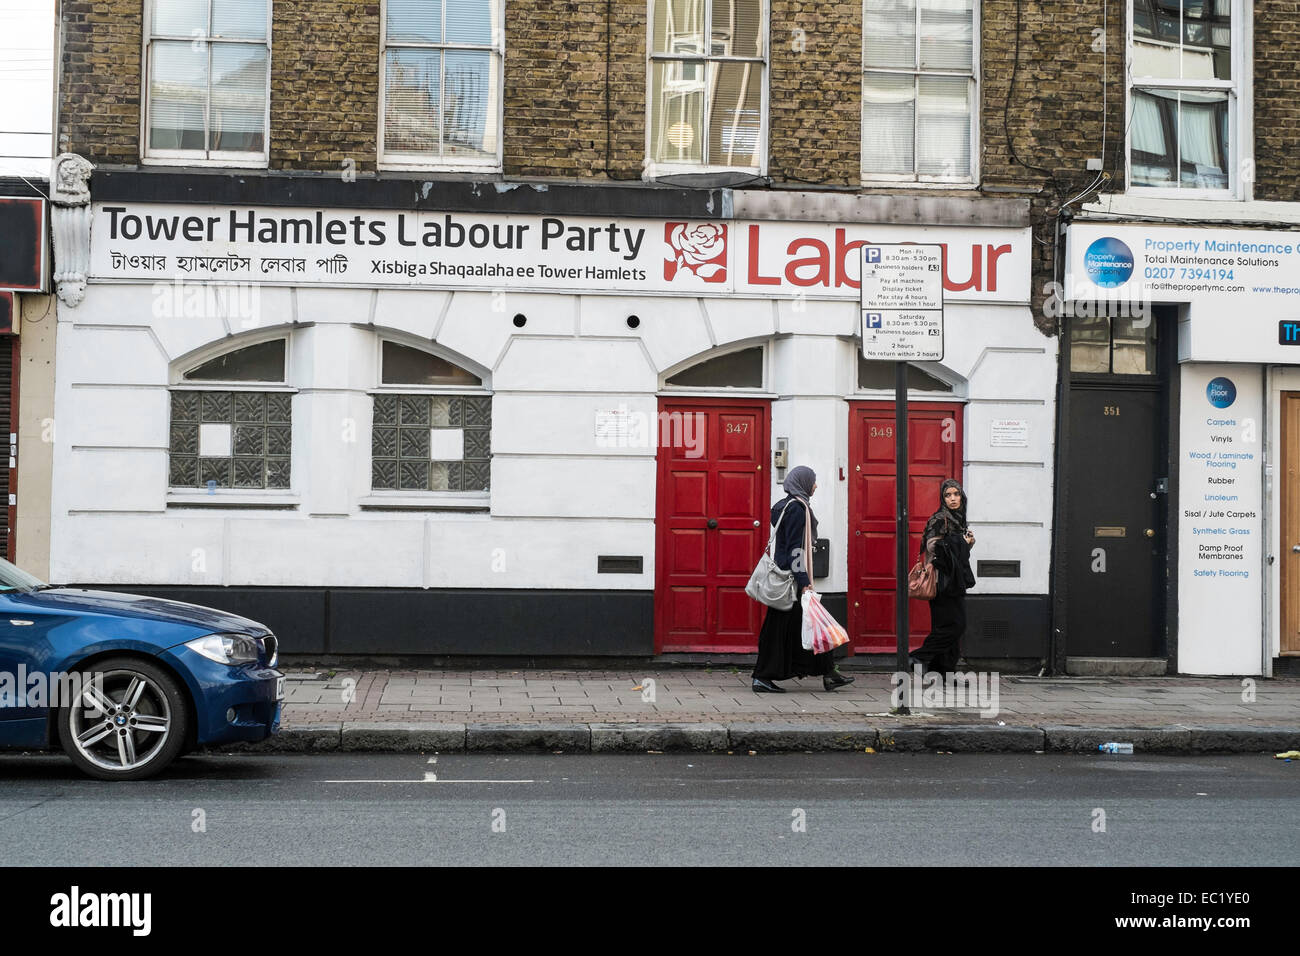 London UK labour party ethnic Tower Hamlets - Stock Image